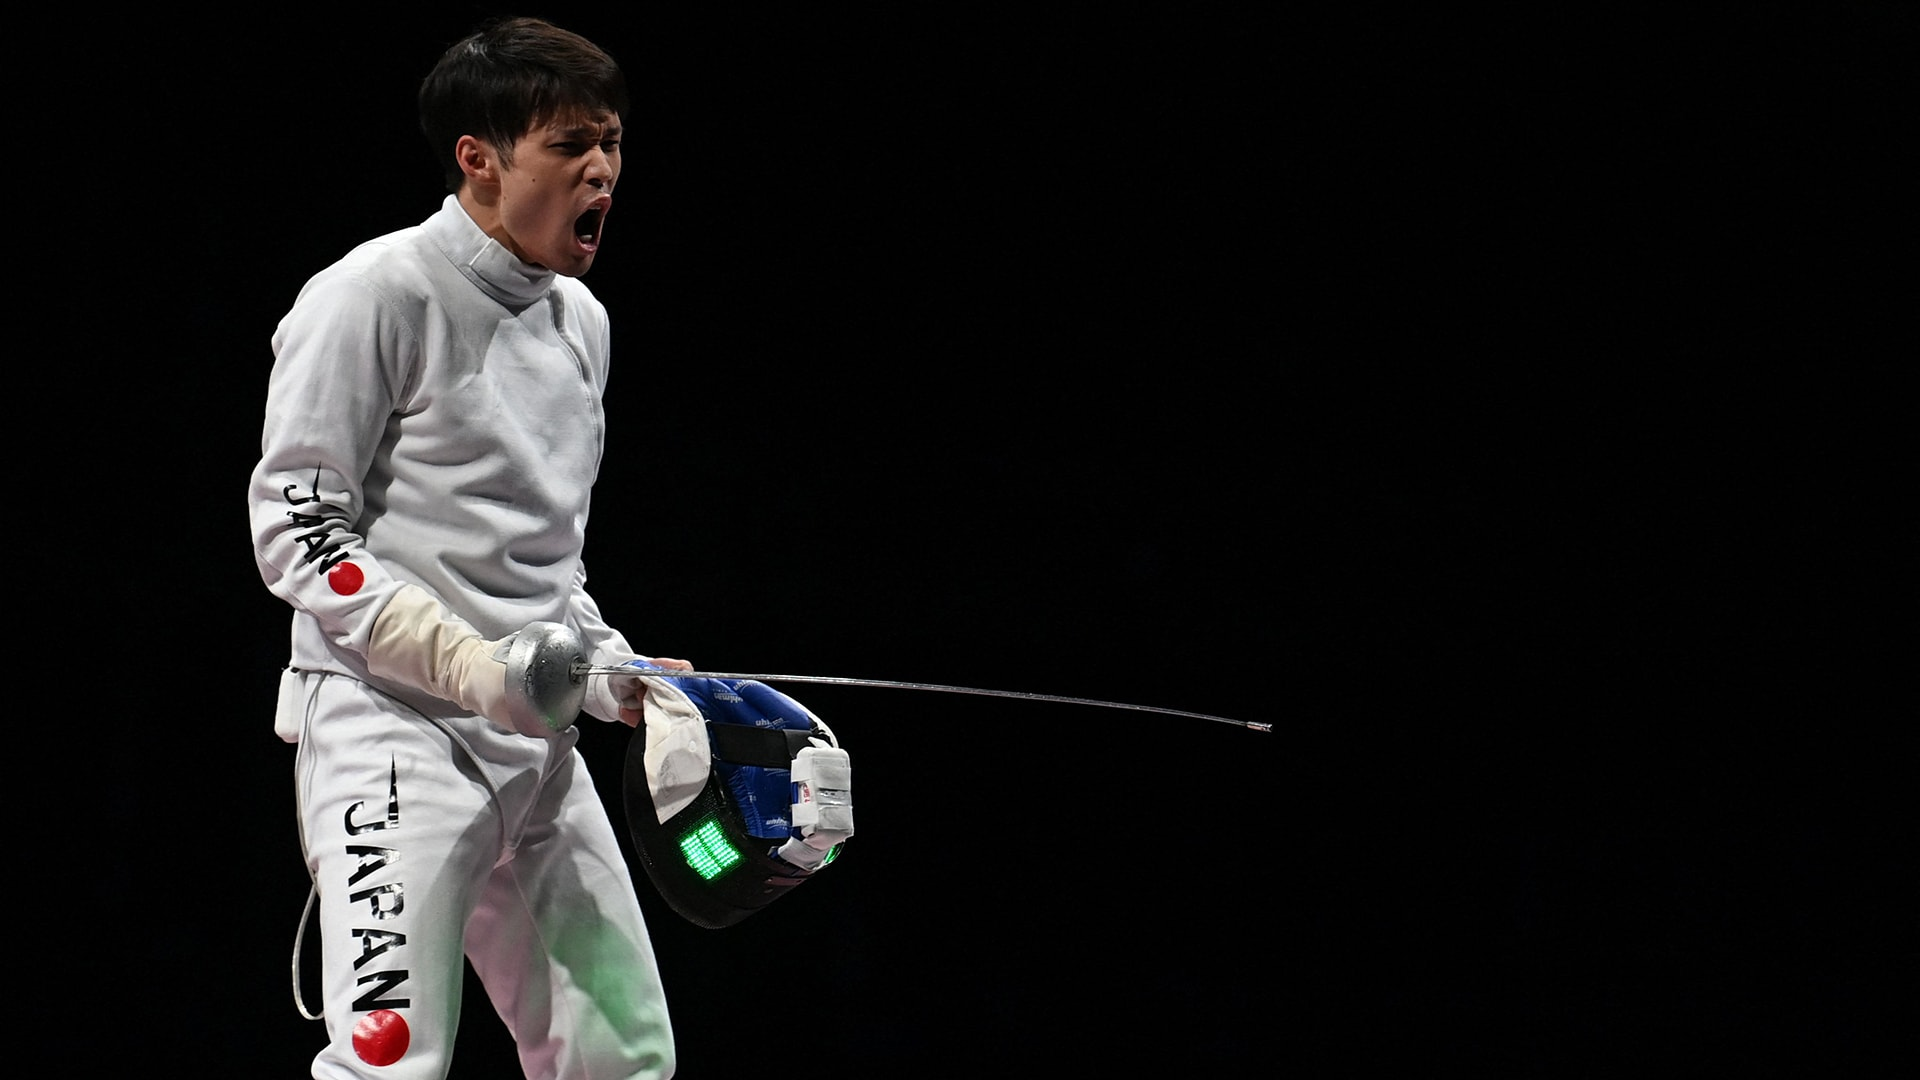 Japan's Masaru Yamada reacts during the match against Russia's Sergey Bida in the men's epee...